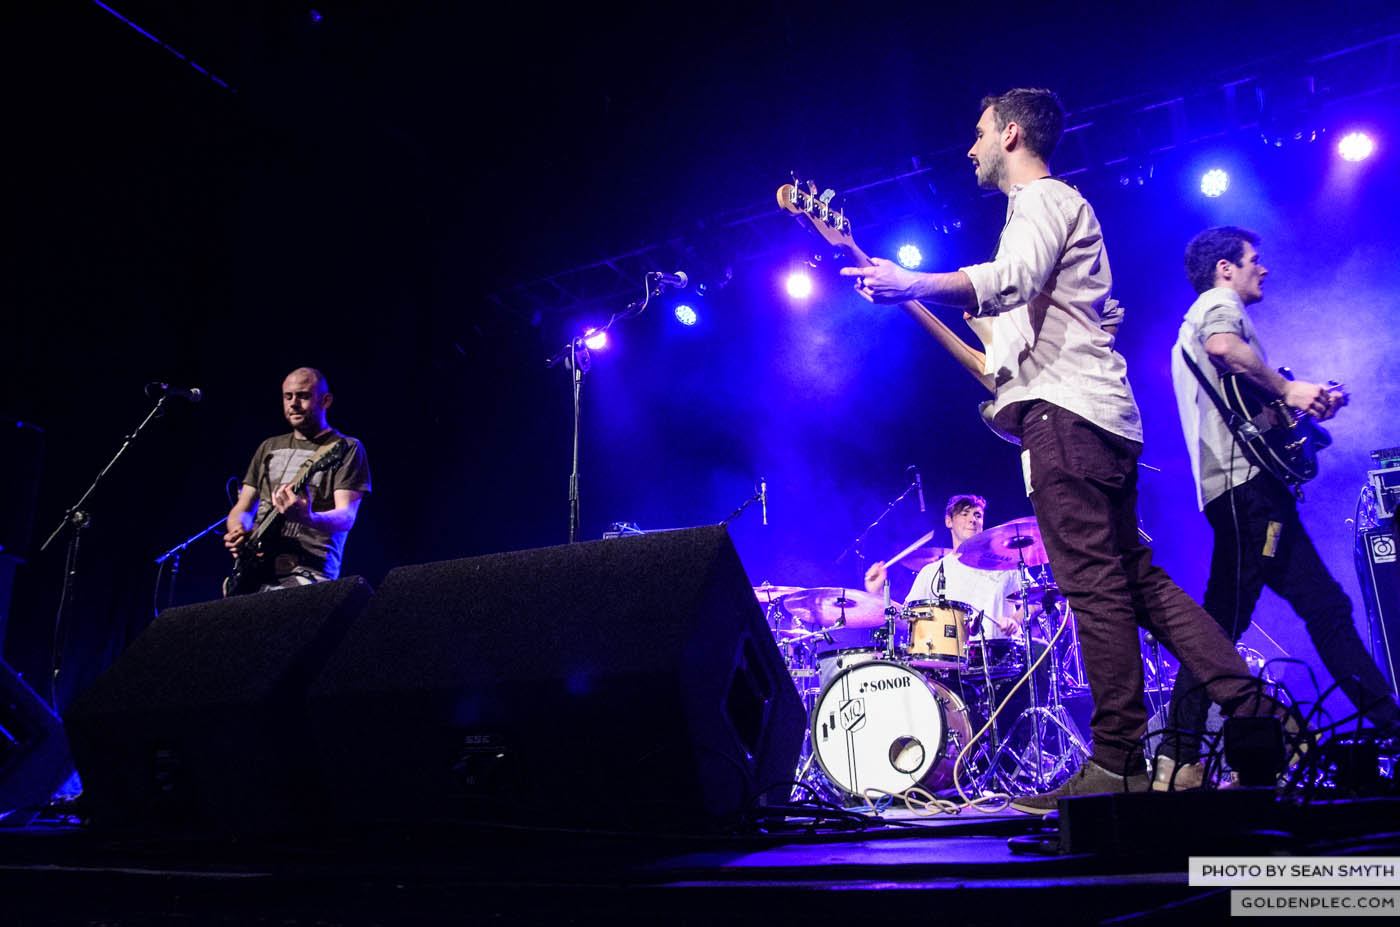 enemies-at-the-olympia-theatre-by-sean-smyth-30-10-14-14-of-17